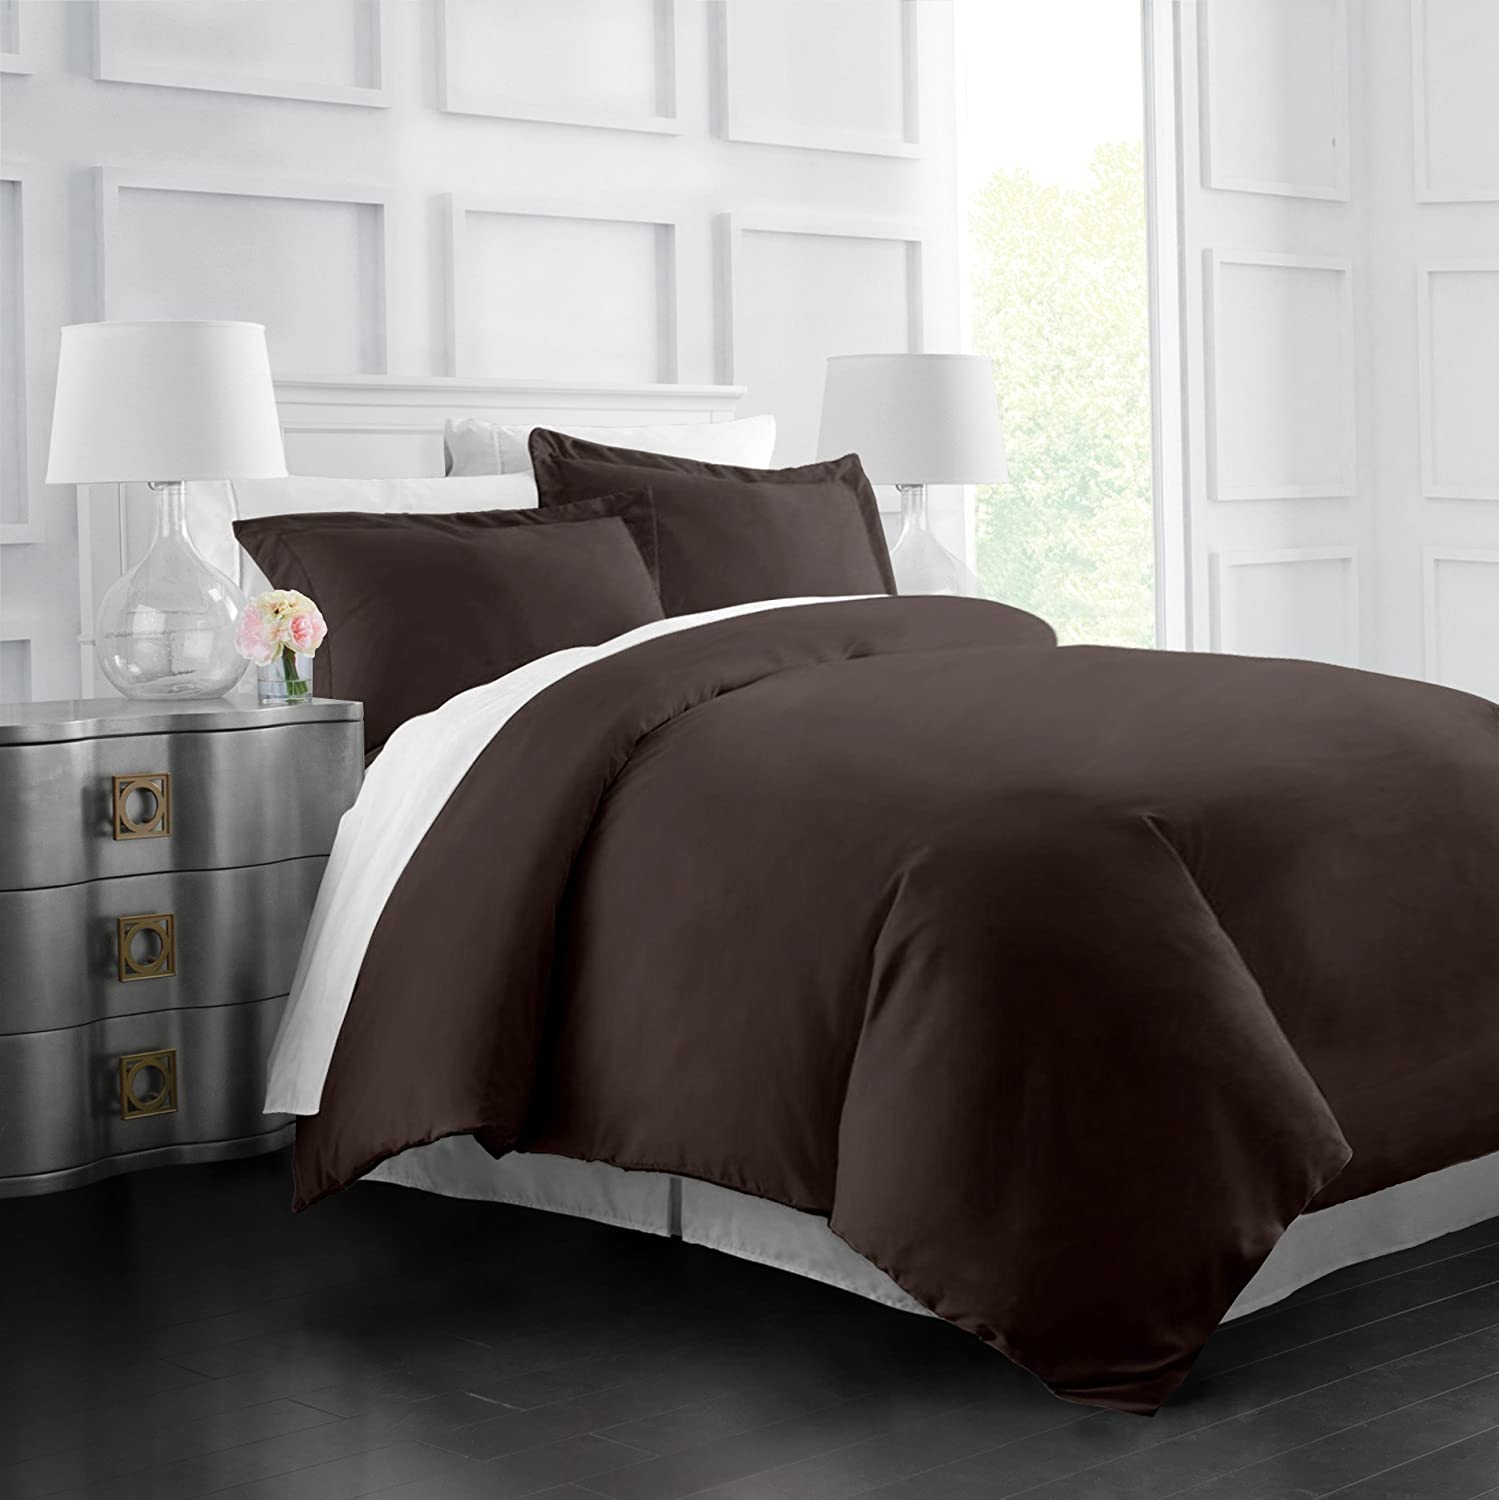 Egyptian Luxury Soft Brushed 1500 Series Microfiber Duvet Cover Set - Hotel Quality & Hypoallergenic with Zippered Closure & Matching Shams -Twin/TwinXL - Black Italian Luxury RG-IL1500DVT-T/TXL-BLK